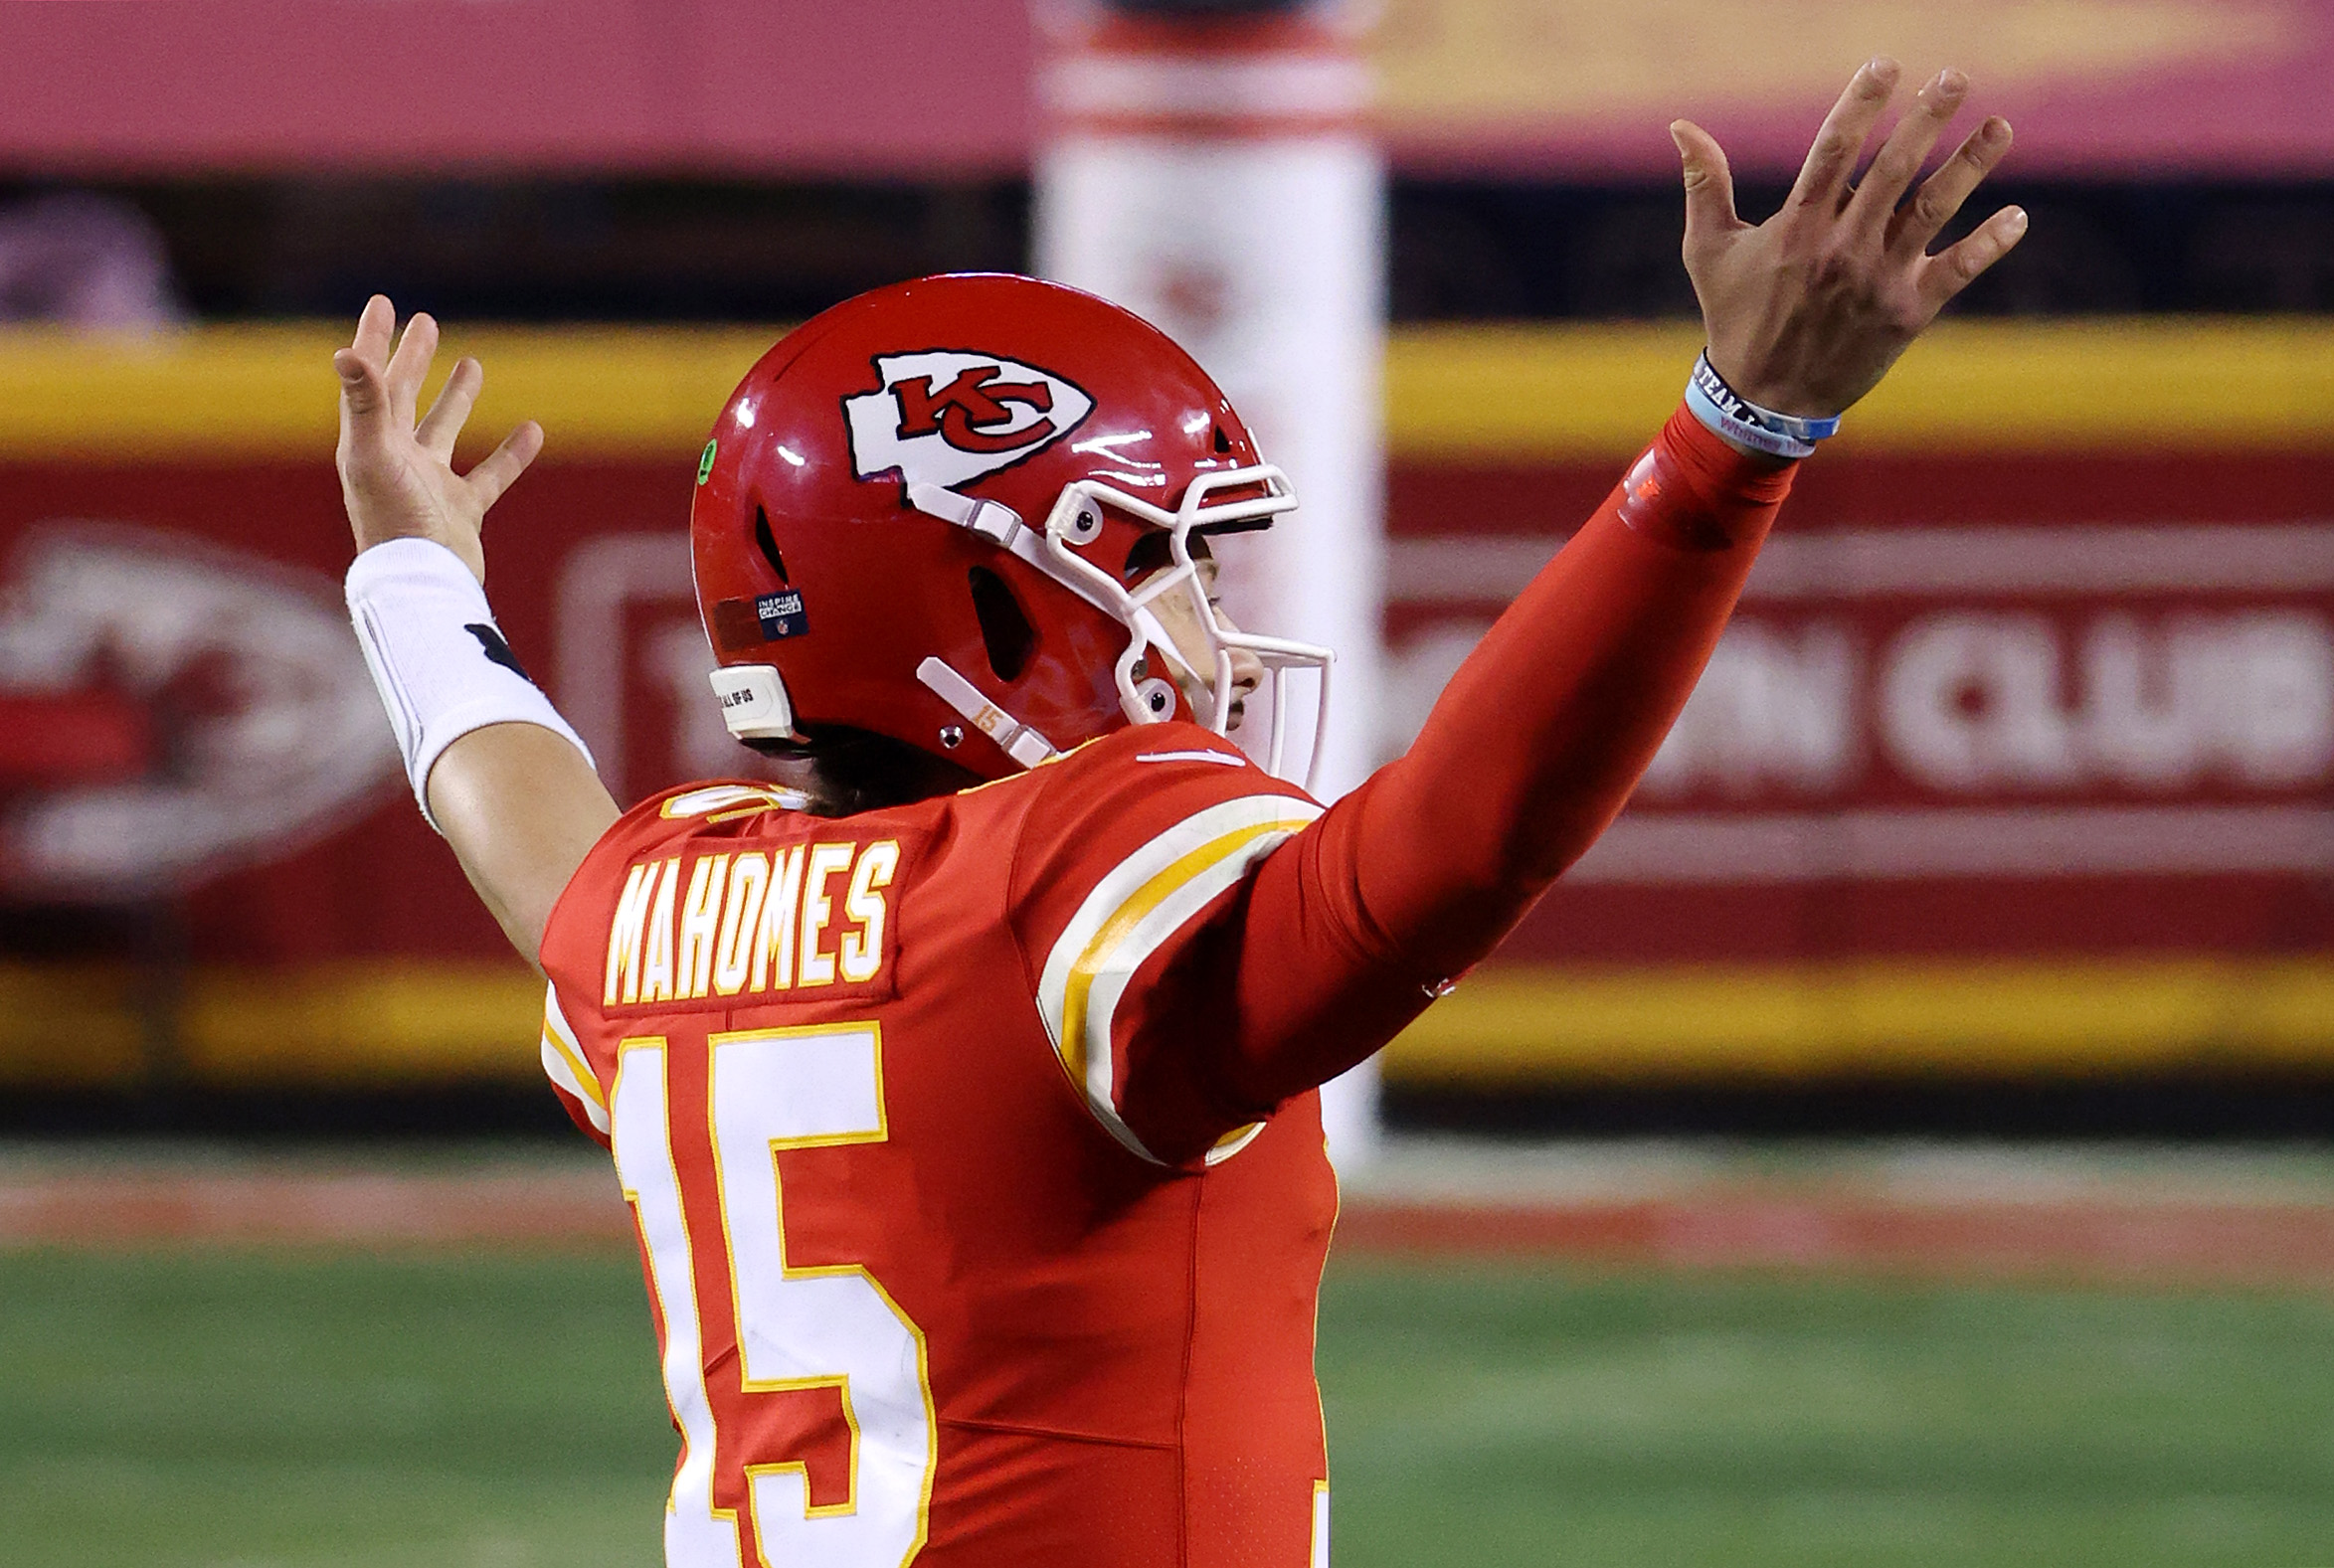 Patrick Mahomes #15 of the Kansas City Chiefs celebrates in the fourth quarter during the AFC Championship game against the Buffalo Bills at Arrowhead Stadium on January 24, 2021 in Kansas City, Missouri.